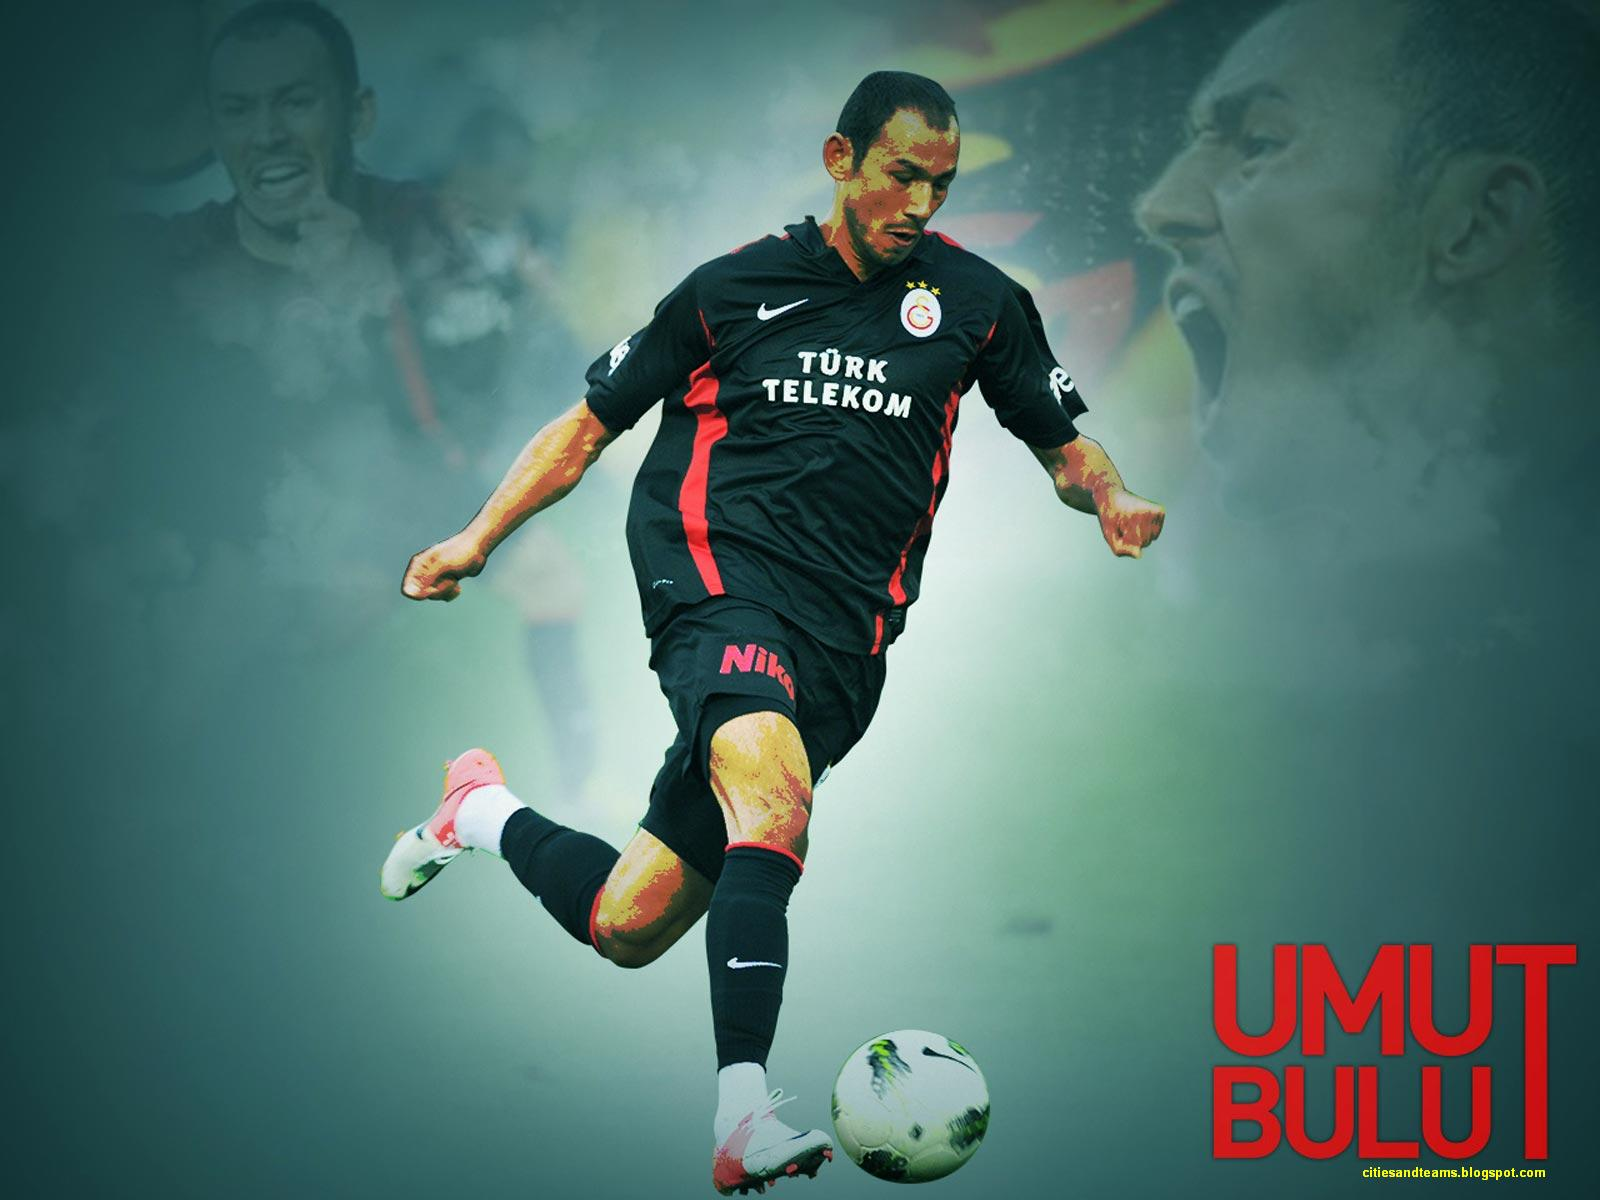 Crazy energetic turkish striker turkey hd desktop wallpaper 2